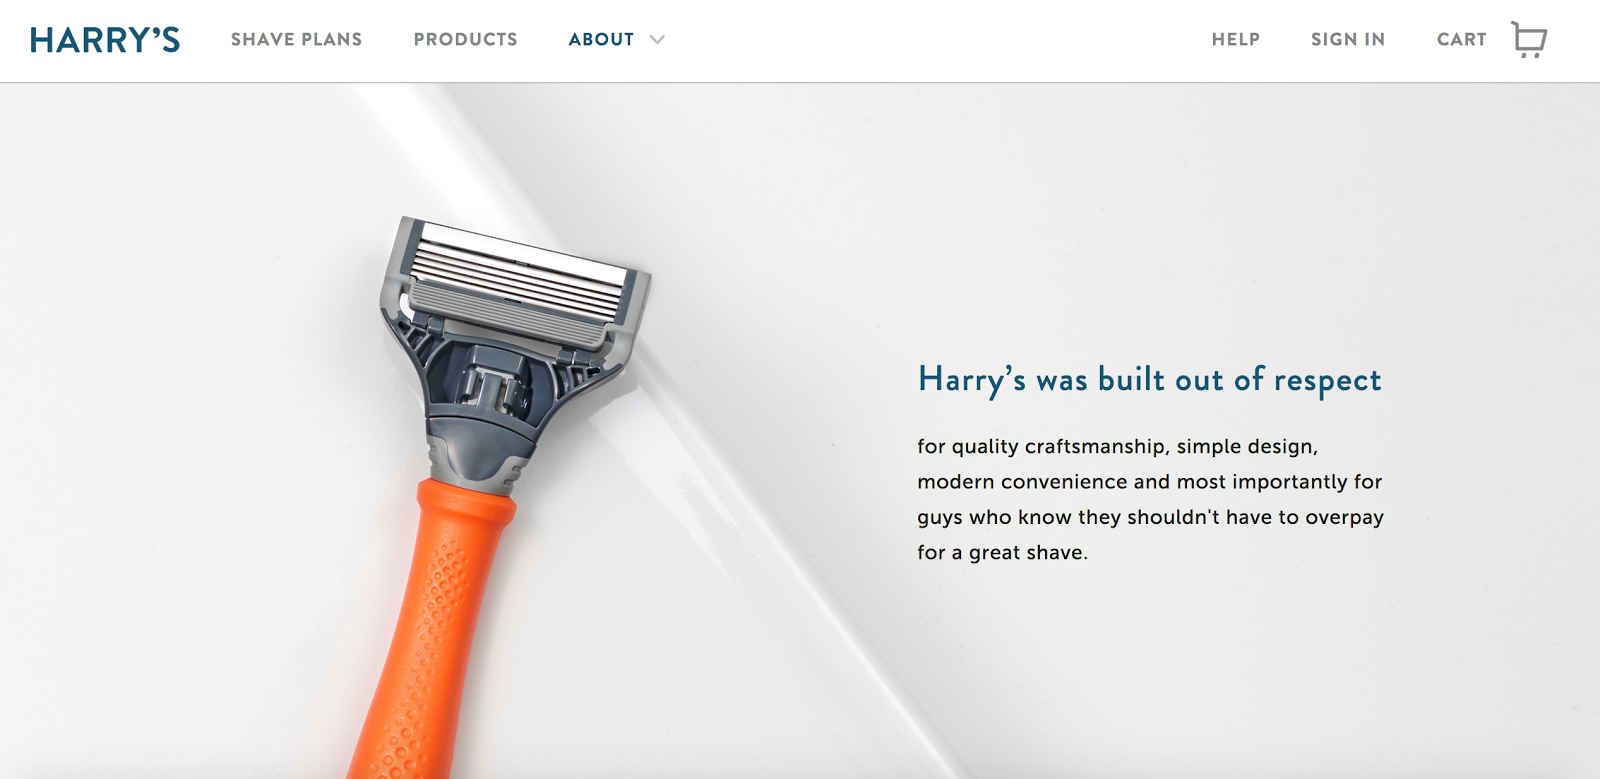 A storytelling example on harrys.com